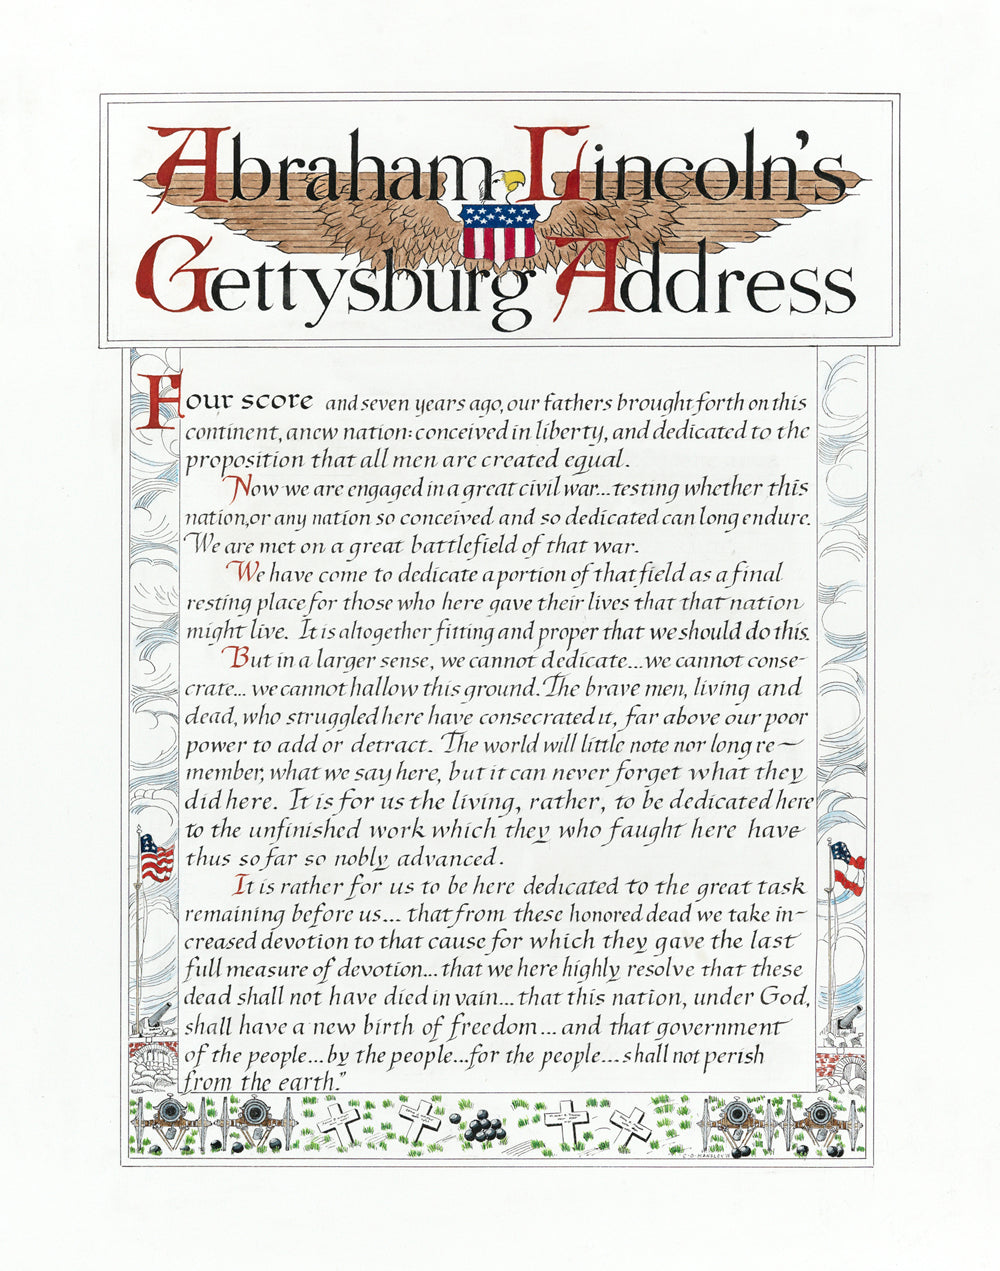 graphic about Gettysburg Address Printable titled Gettysburg Protect